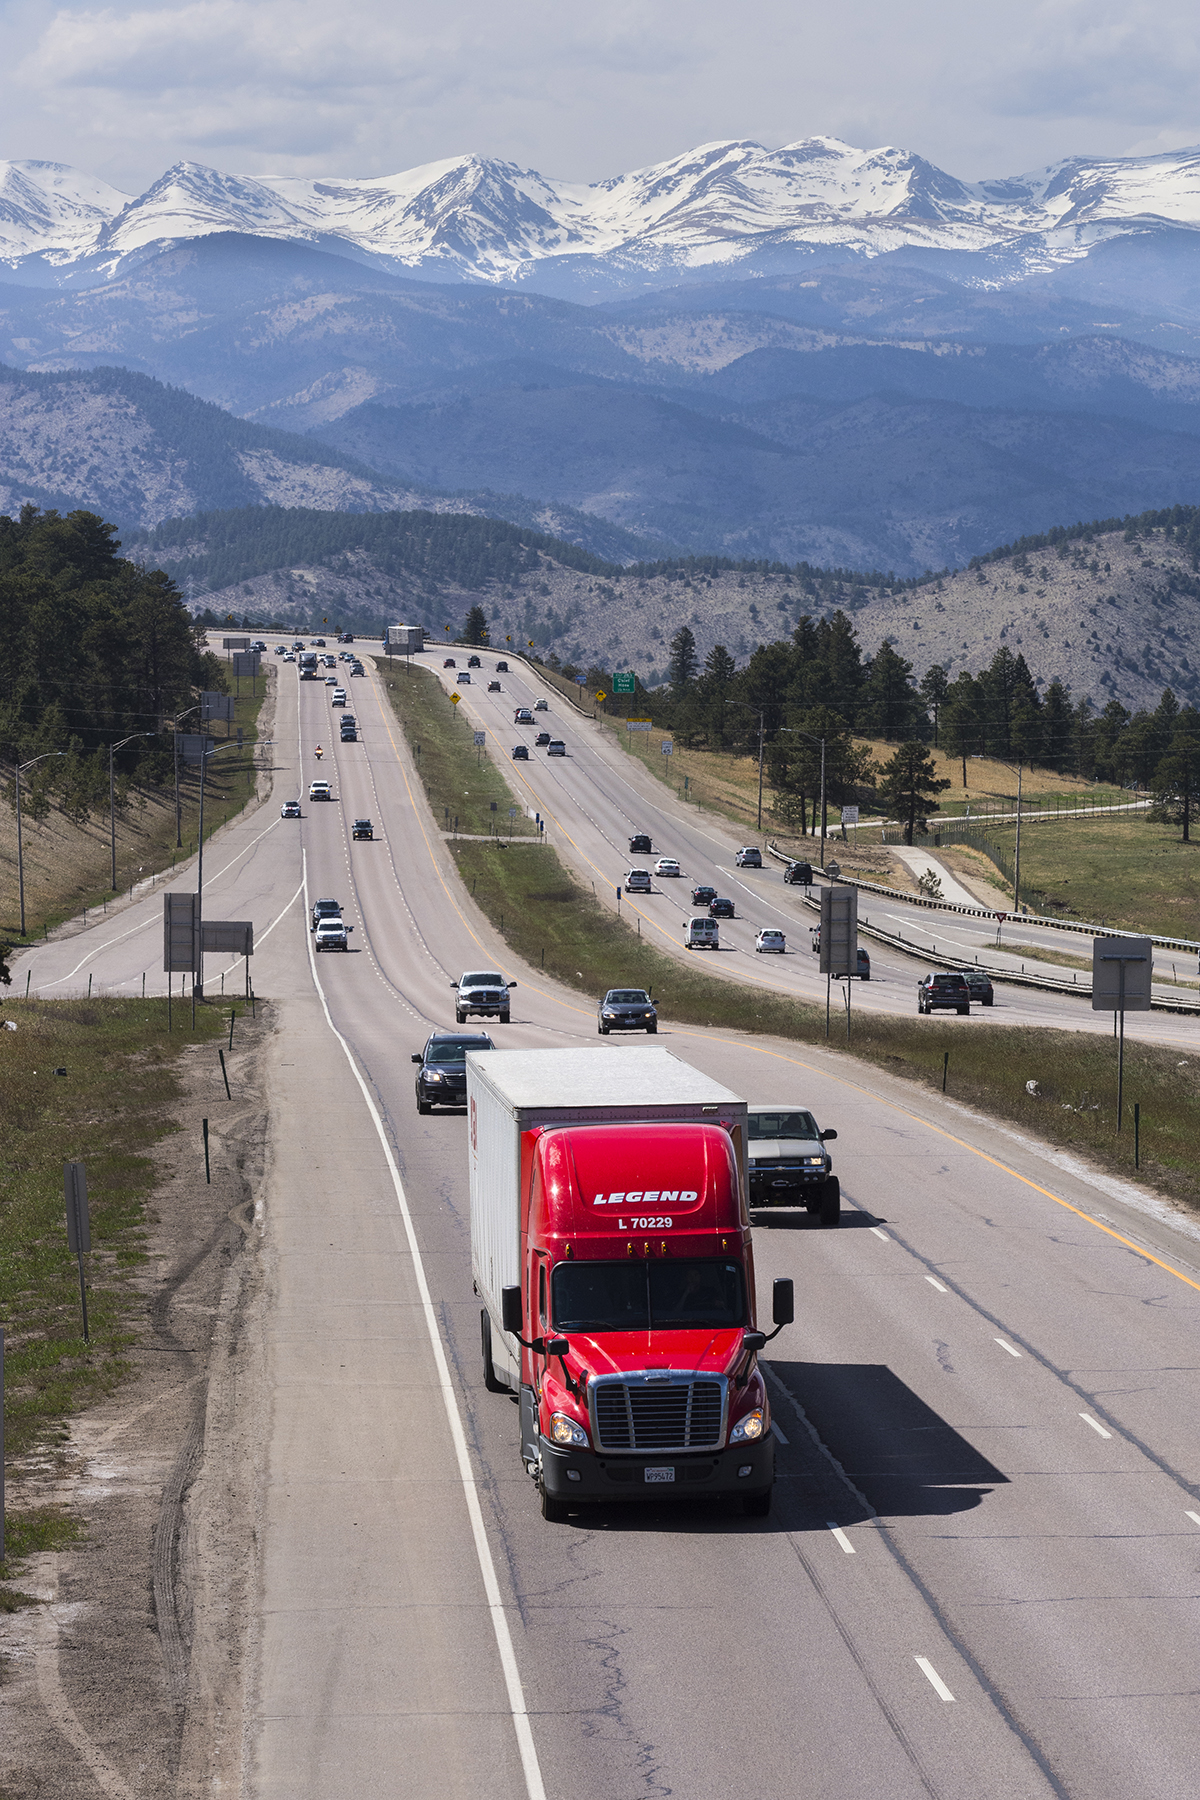 CO 160 Truck on I-70 at Genessee _1224_72C2202lr6 small.jpg detail image